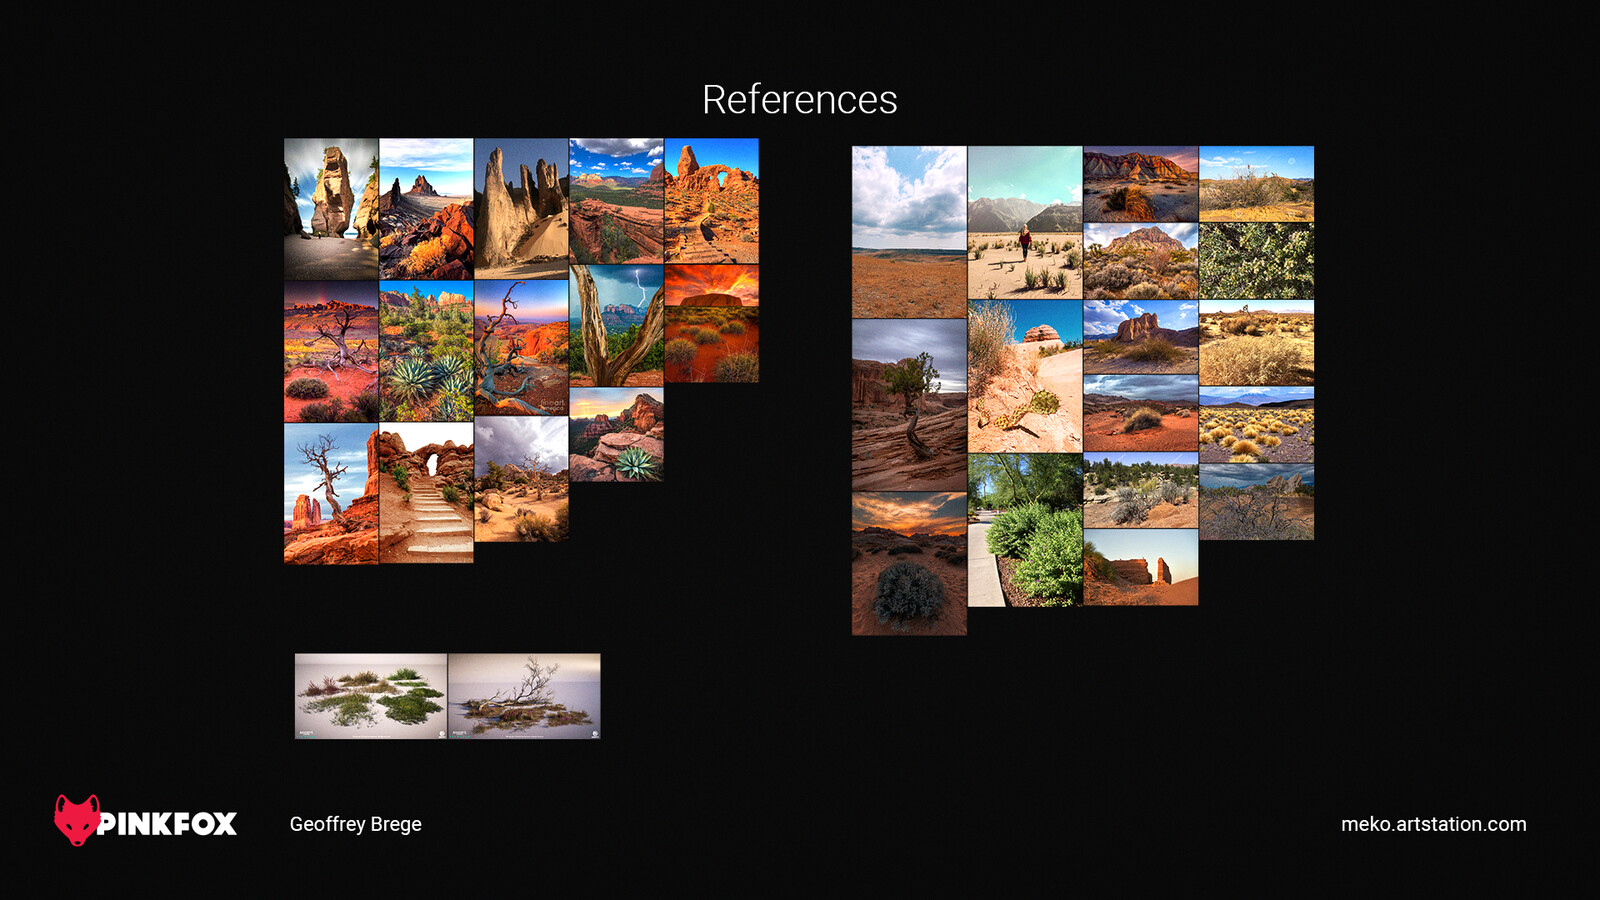 References Used